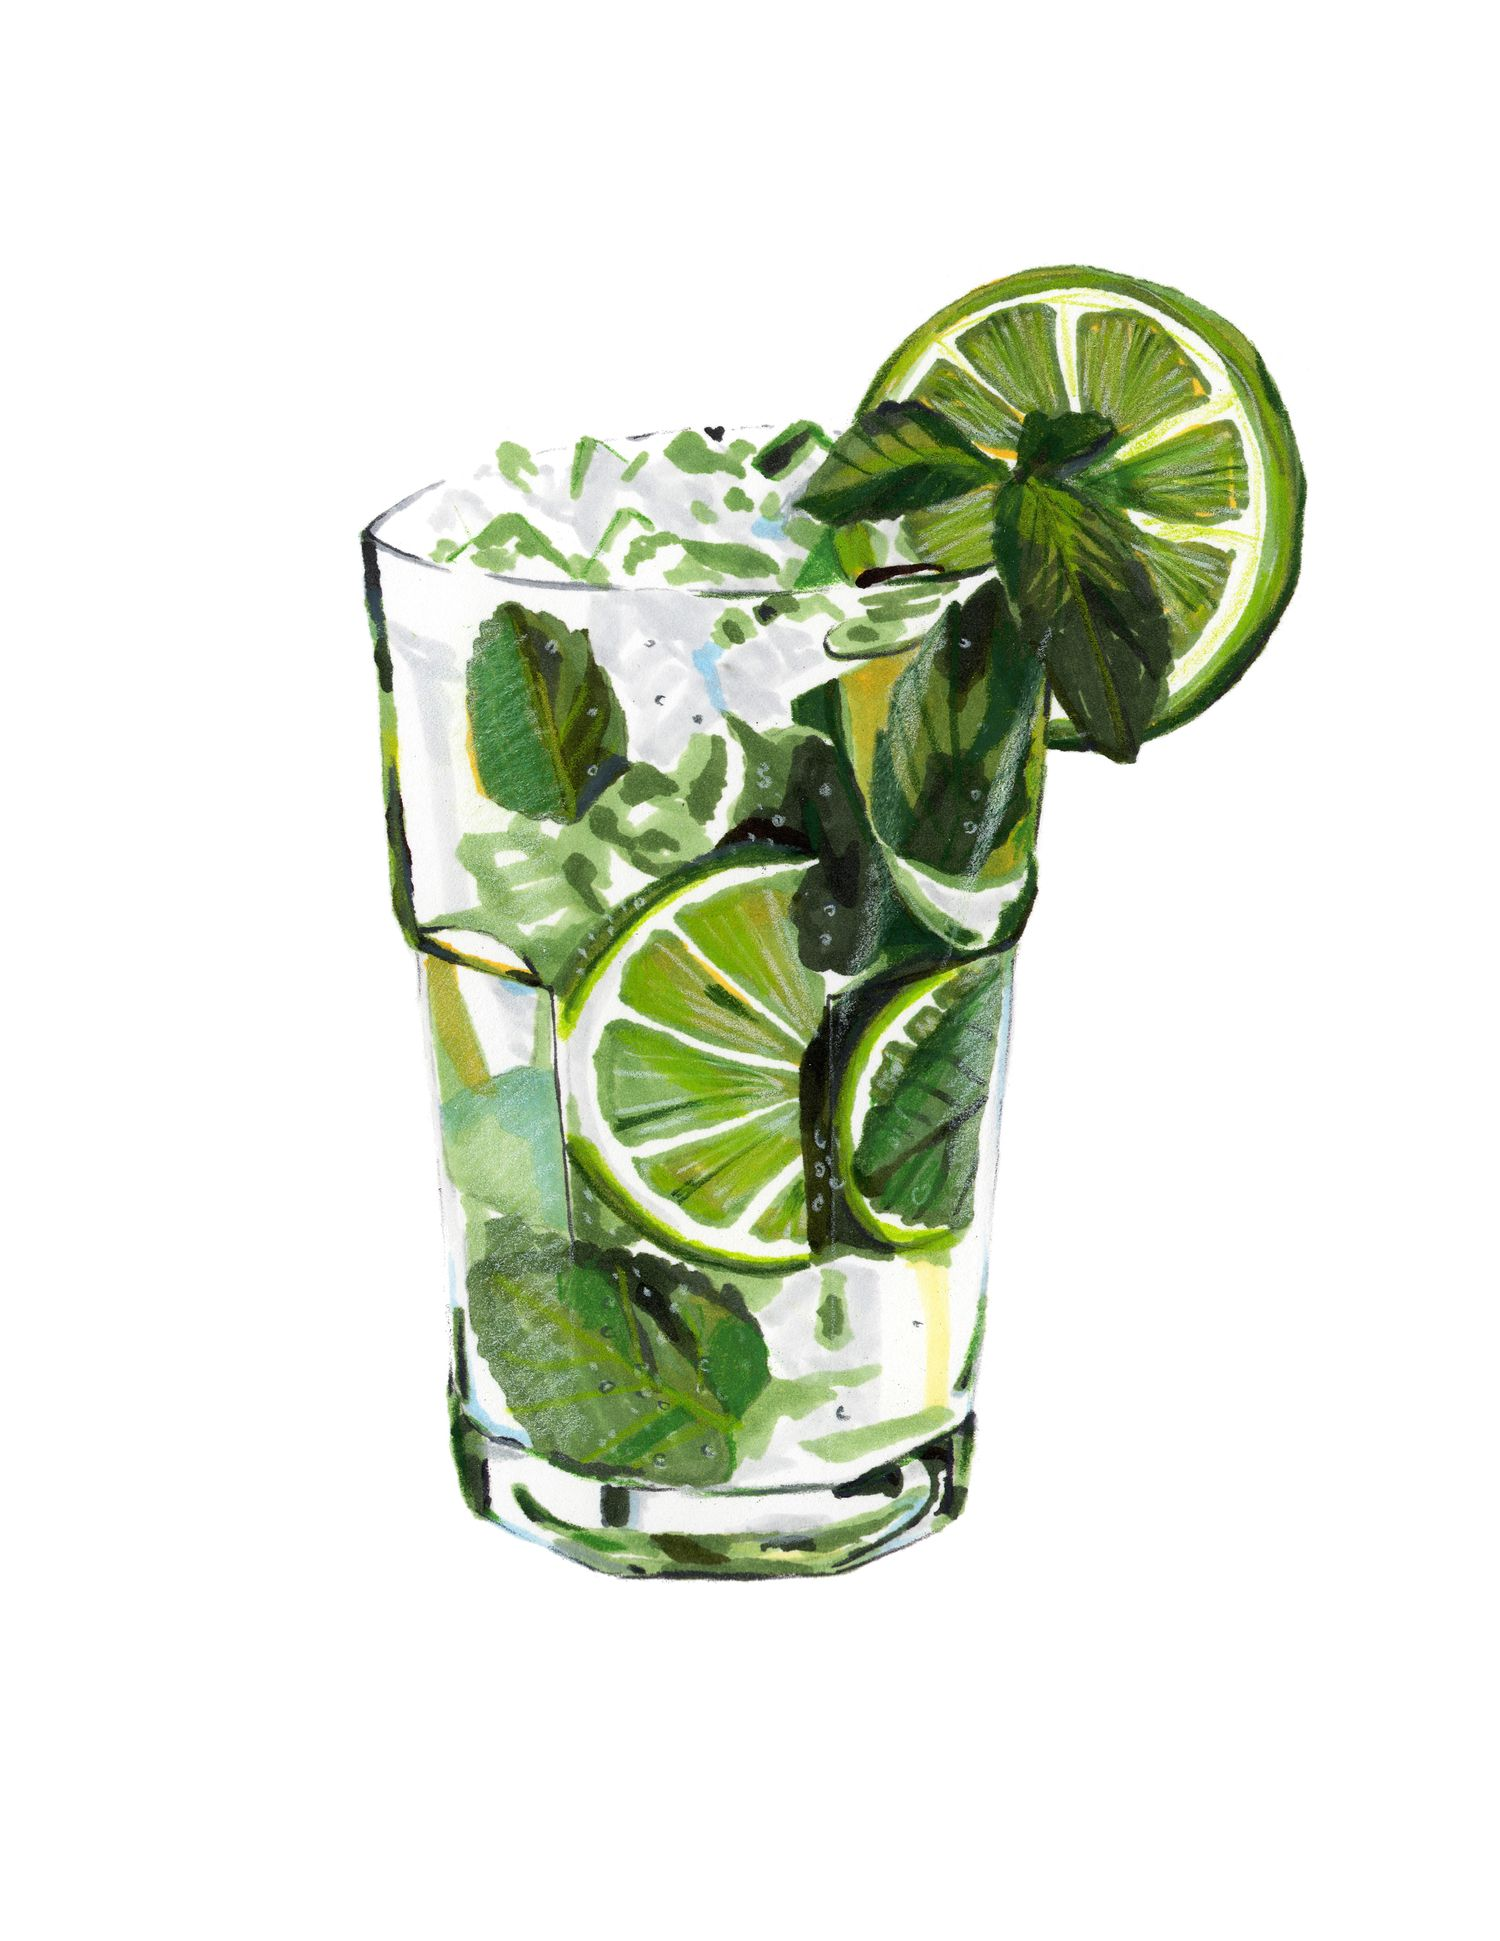 Mojito Glas Mojito Illustration By Bruna Mebs Markers And Color Pencils Food